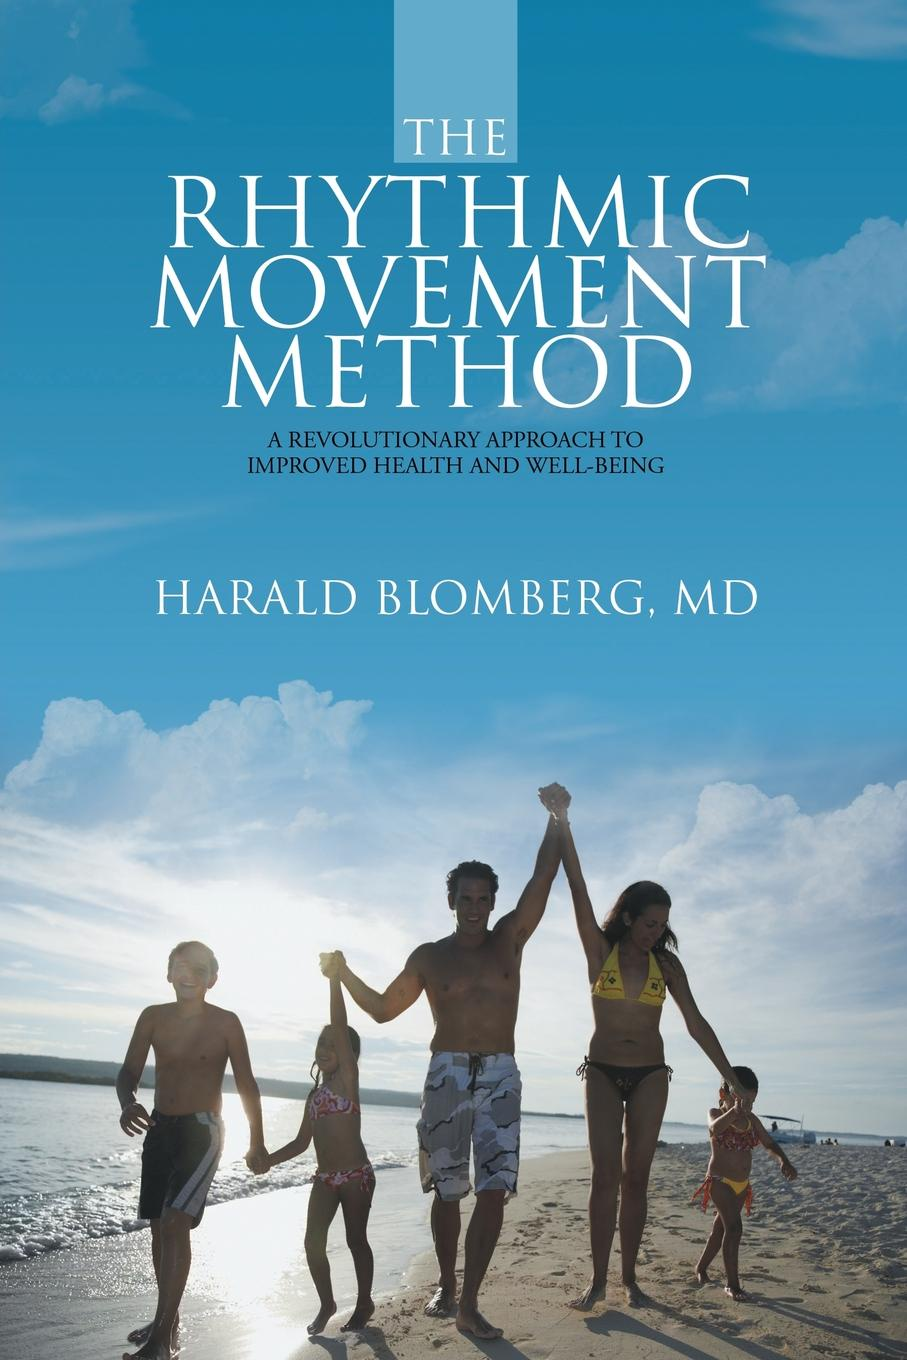 MD Harald Blomberg The Rhythmic Movement Method. A Revolutionary Approach to Improved Health and Well-Being exercises for brain health page 5